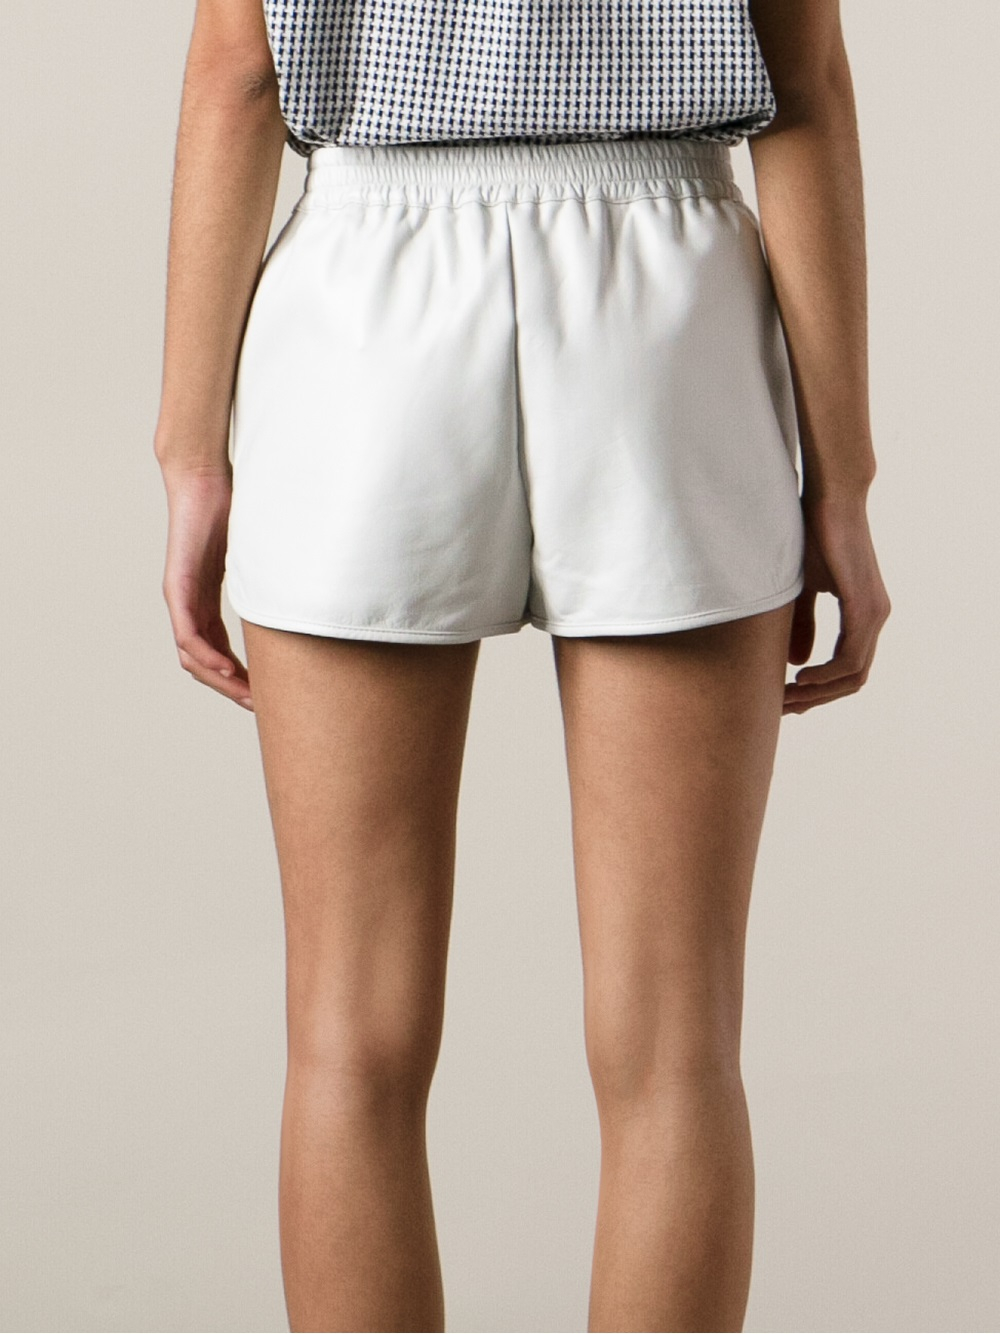 Discover women's shorts with ASOS. Shop for jersey shorts, denim shorts, leather shorts & other women's short styles.